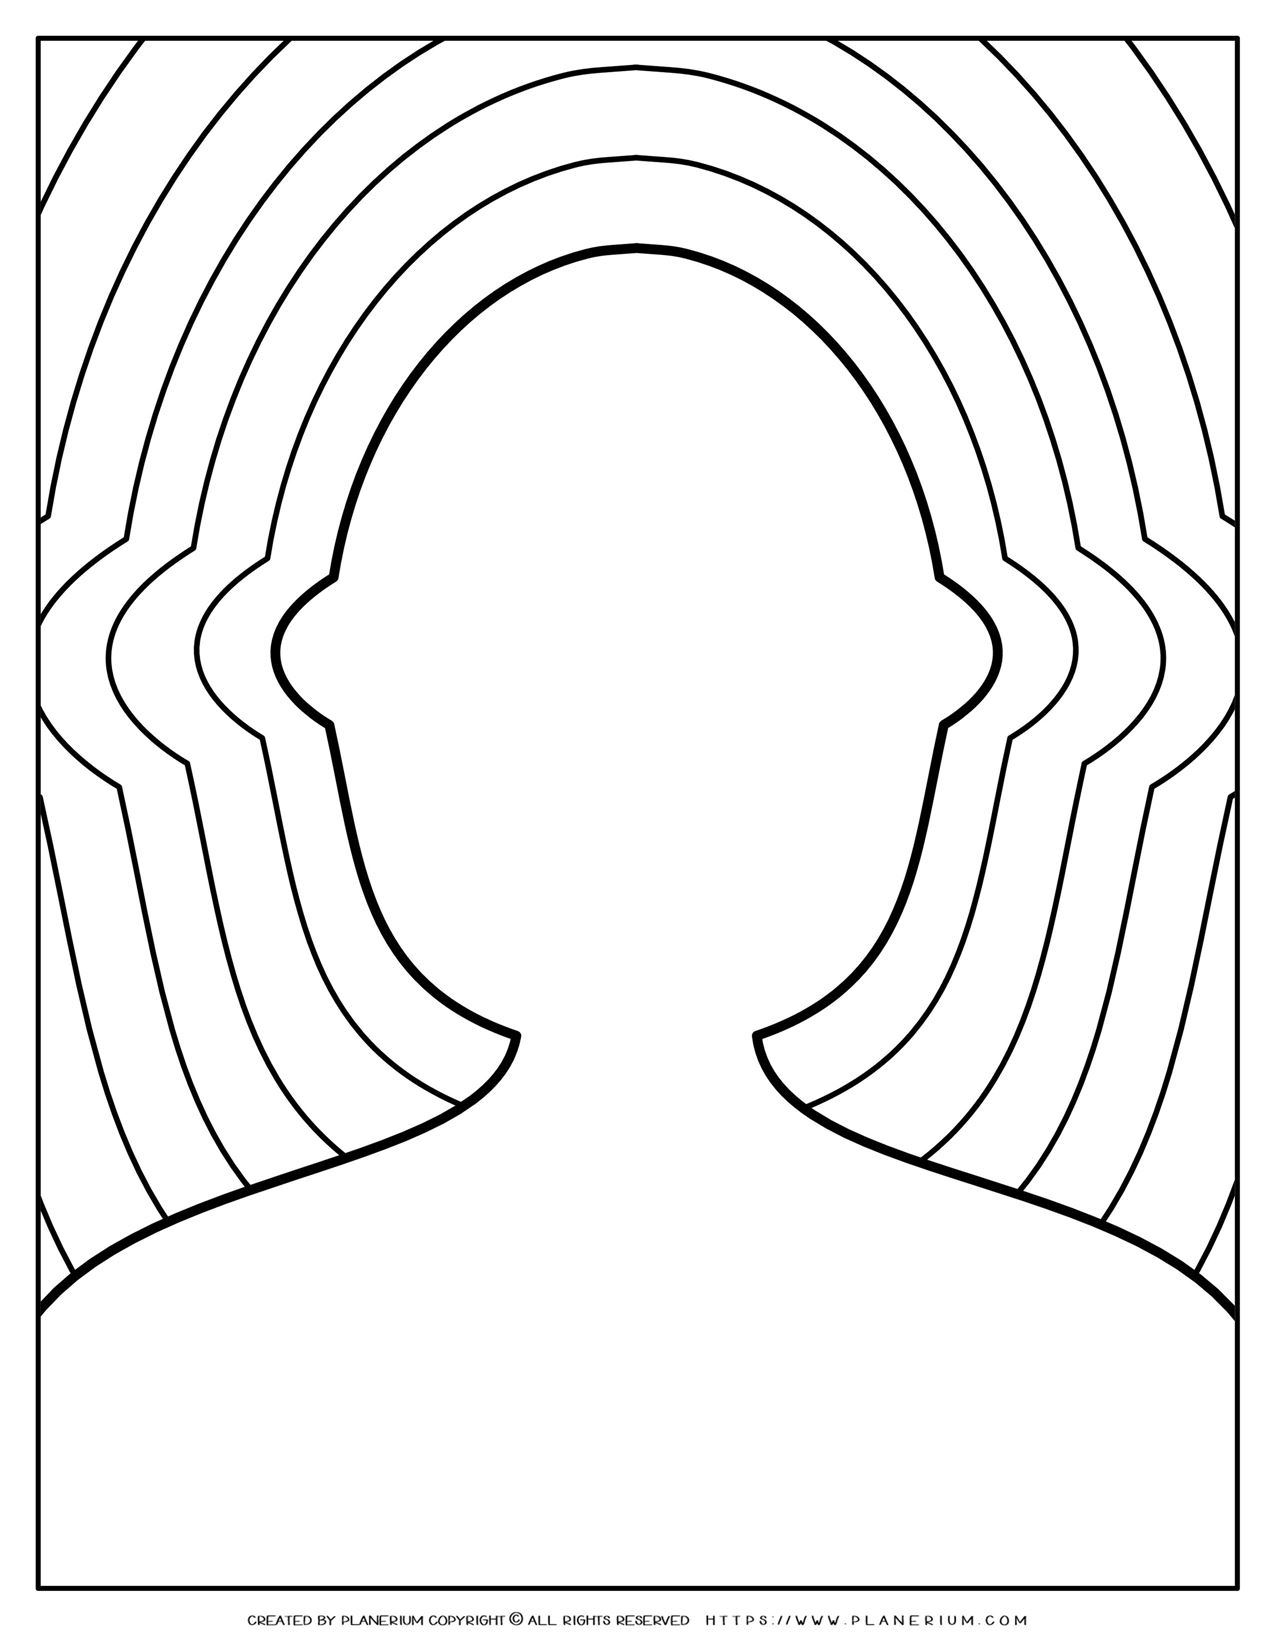 Adult Coloring Pages - Person Outline Ripples | Planerium